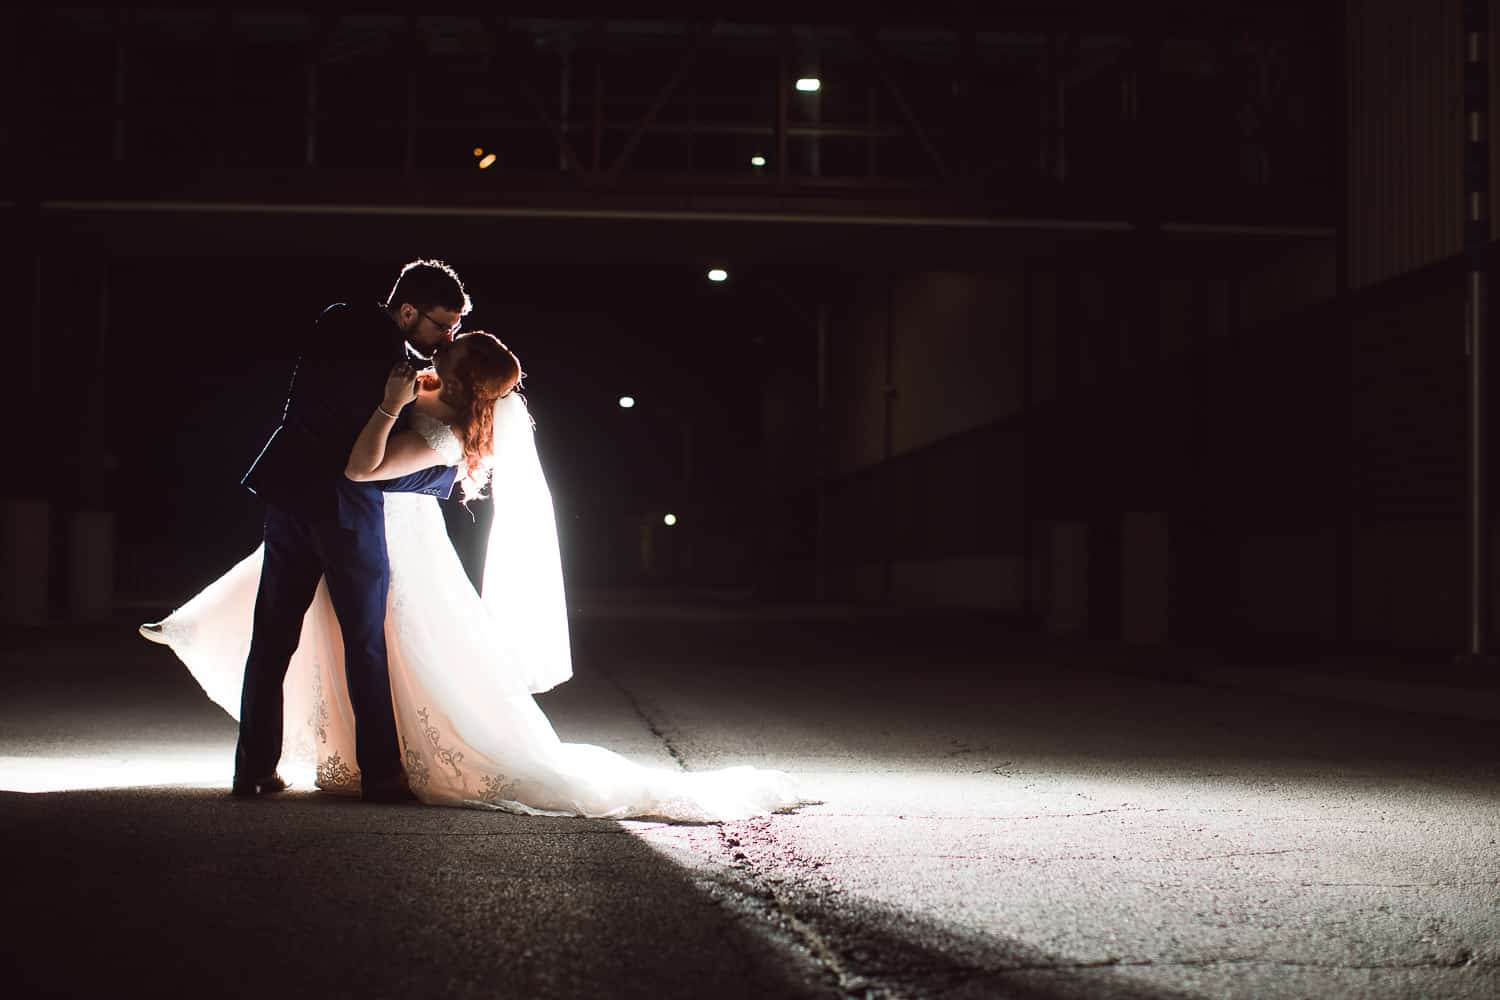 night wedding photos at Faultless Event Space wedding in Kansas City west bottoms